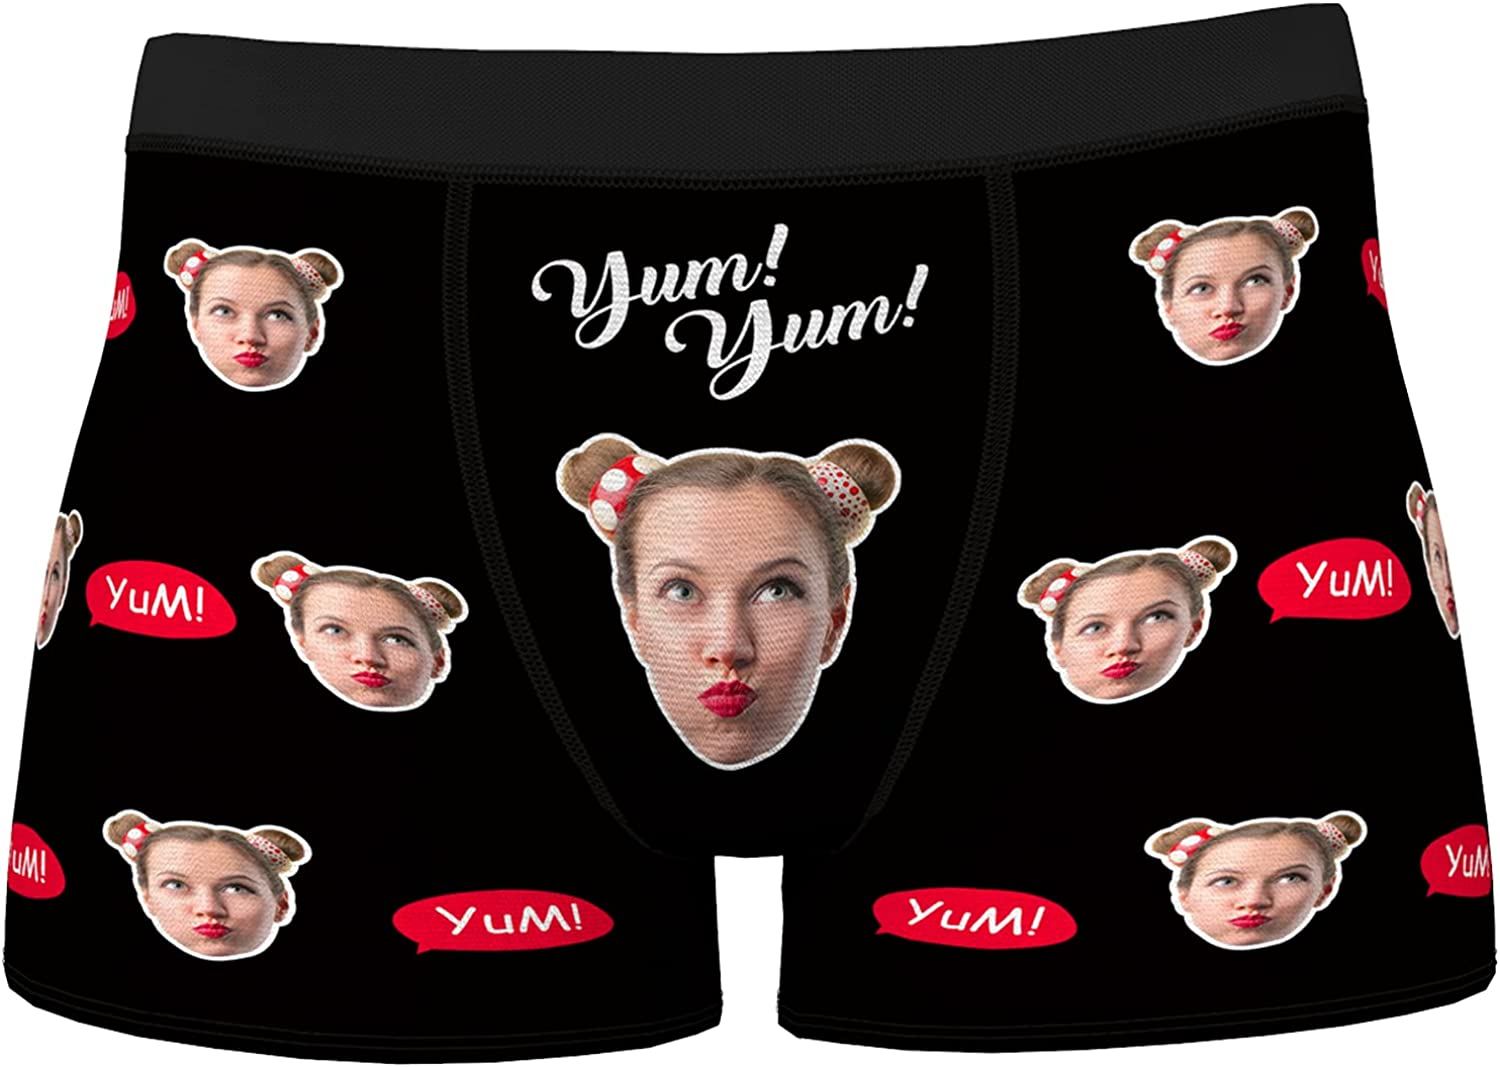 Custom Face Men's Boxer Novelty Briefs Underwear Shorts Underpants Printed with Photo Picture Gift for Men